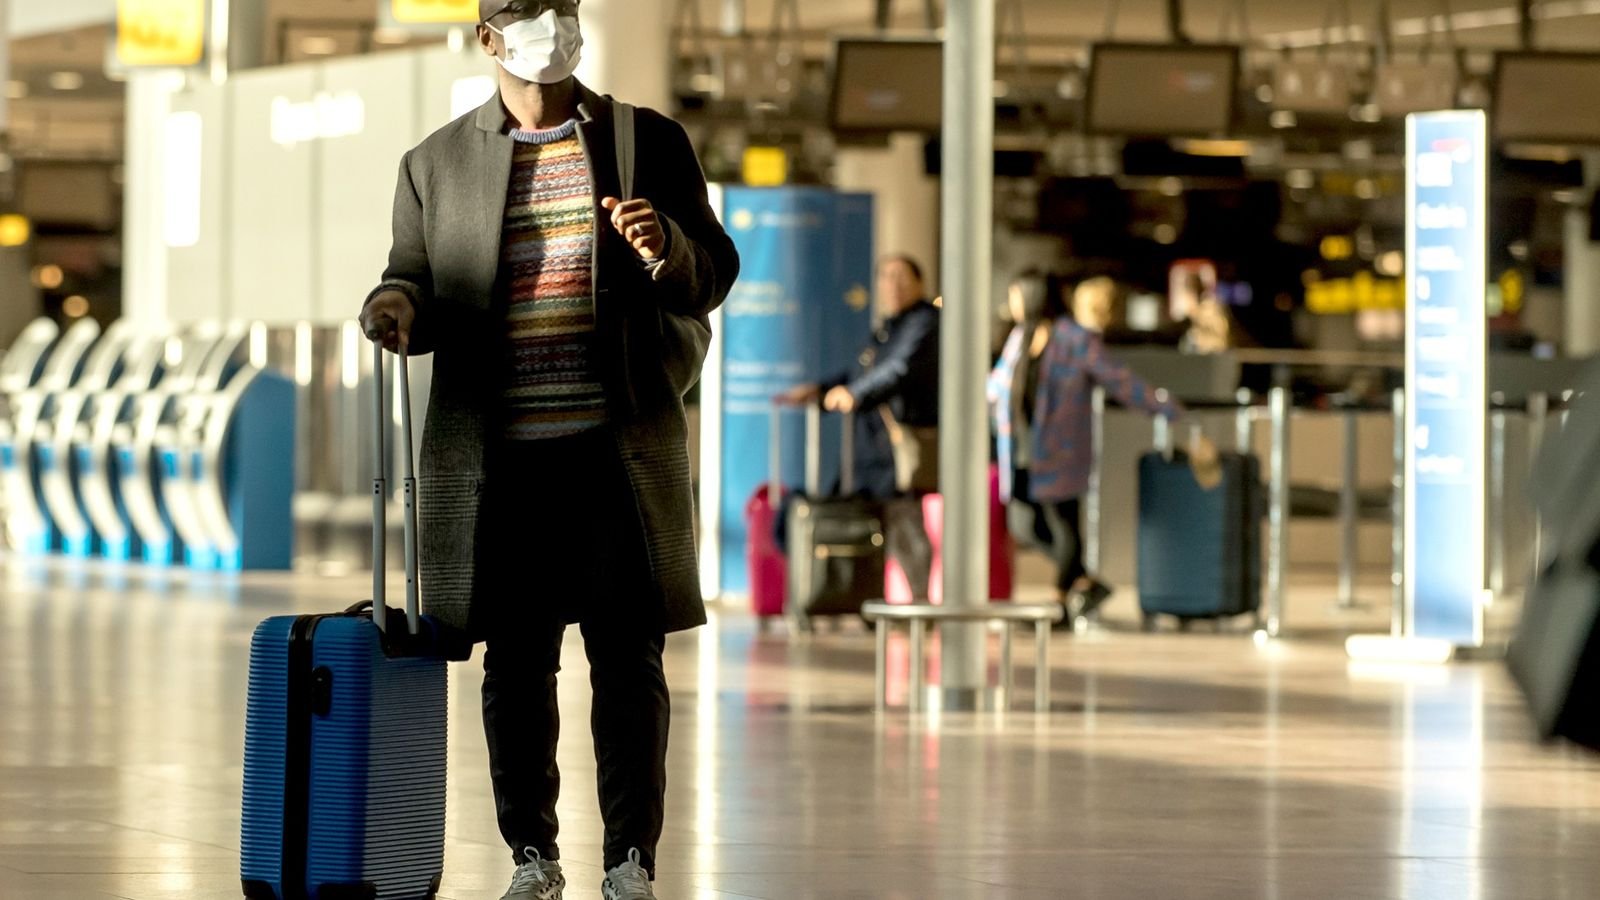 At the Brussels airport, a man wears a mask during the coronavirus outbreak.